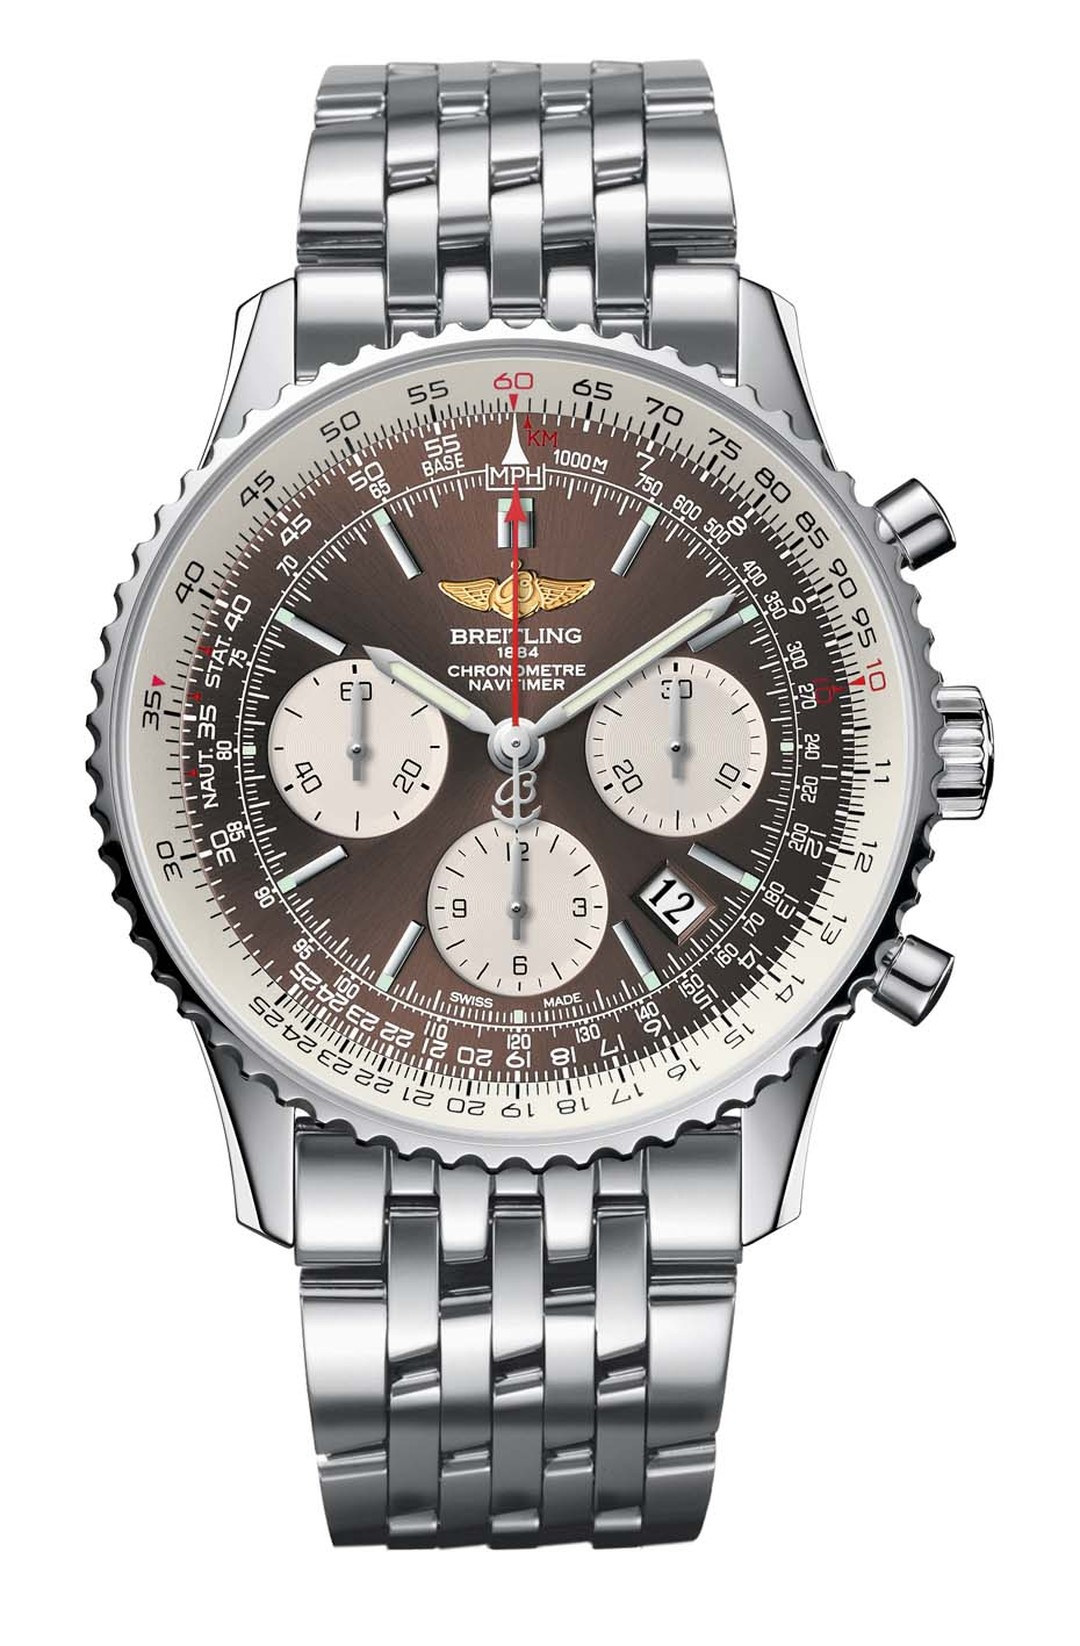 Breitling's limited-edition Navitimer PanAmerican pilot chronograph features a new brown dial and in-house movement. It remains true to the original 1953 model, with an inner slide rule bezel that offers a plethora of calculation possibilities, including